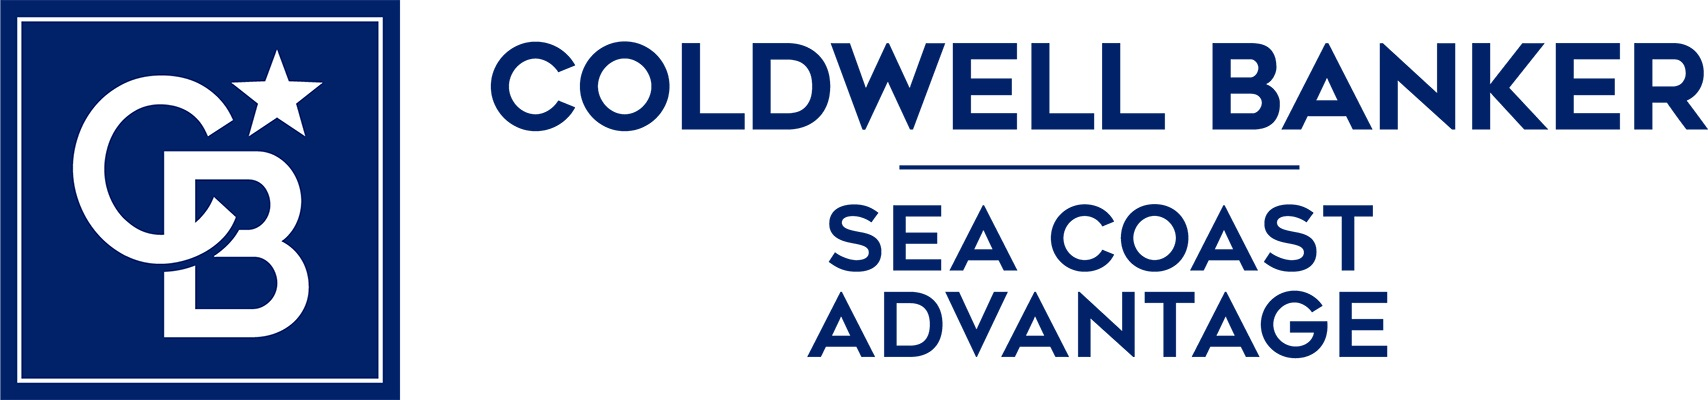 Cindy Young - Coldwell Banker Sea Coast Advantage Realty